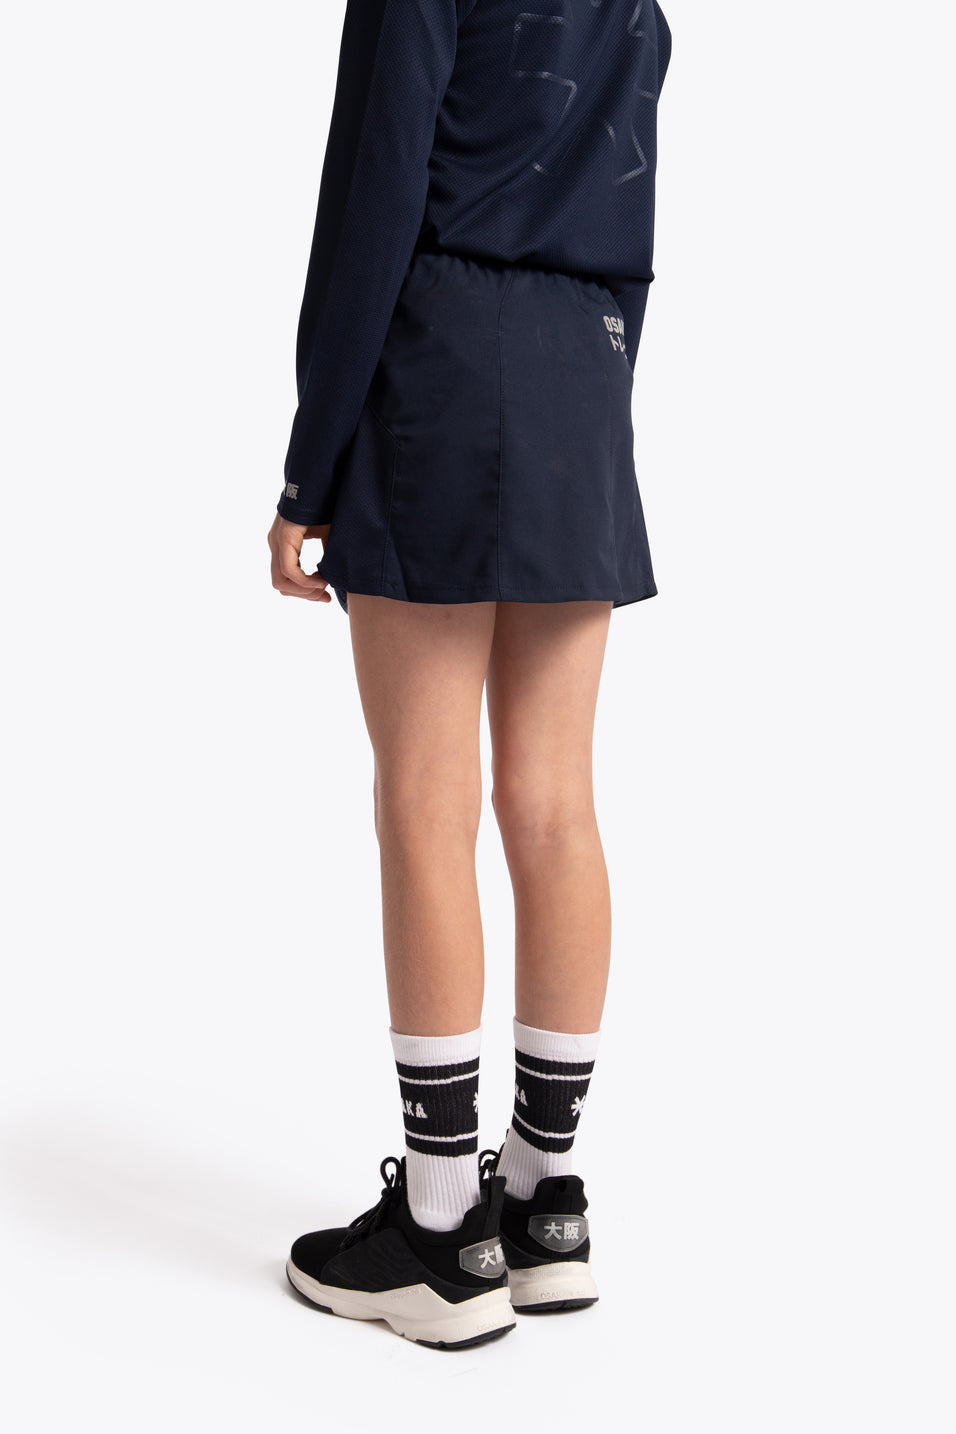 Deshi Training Skort - Navy